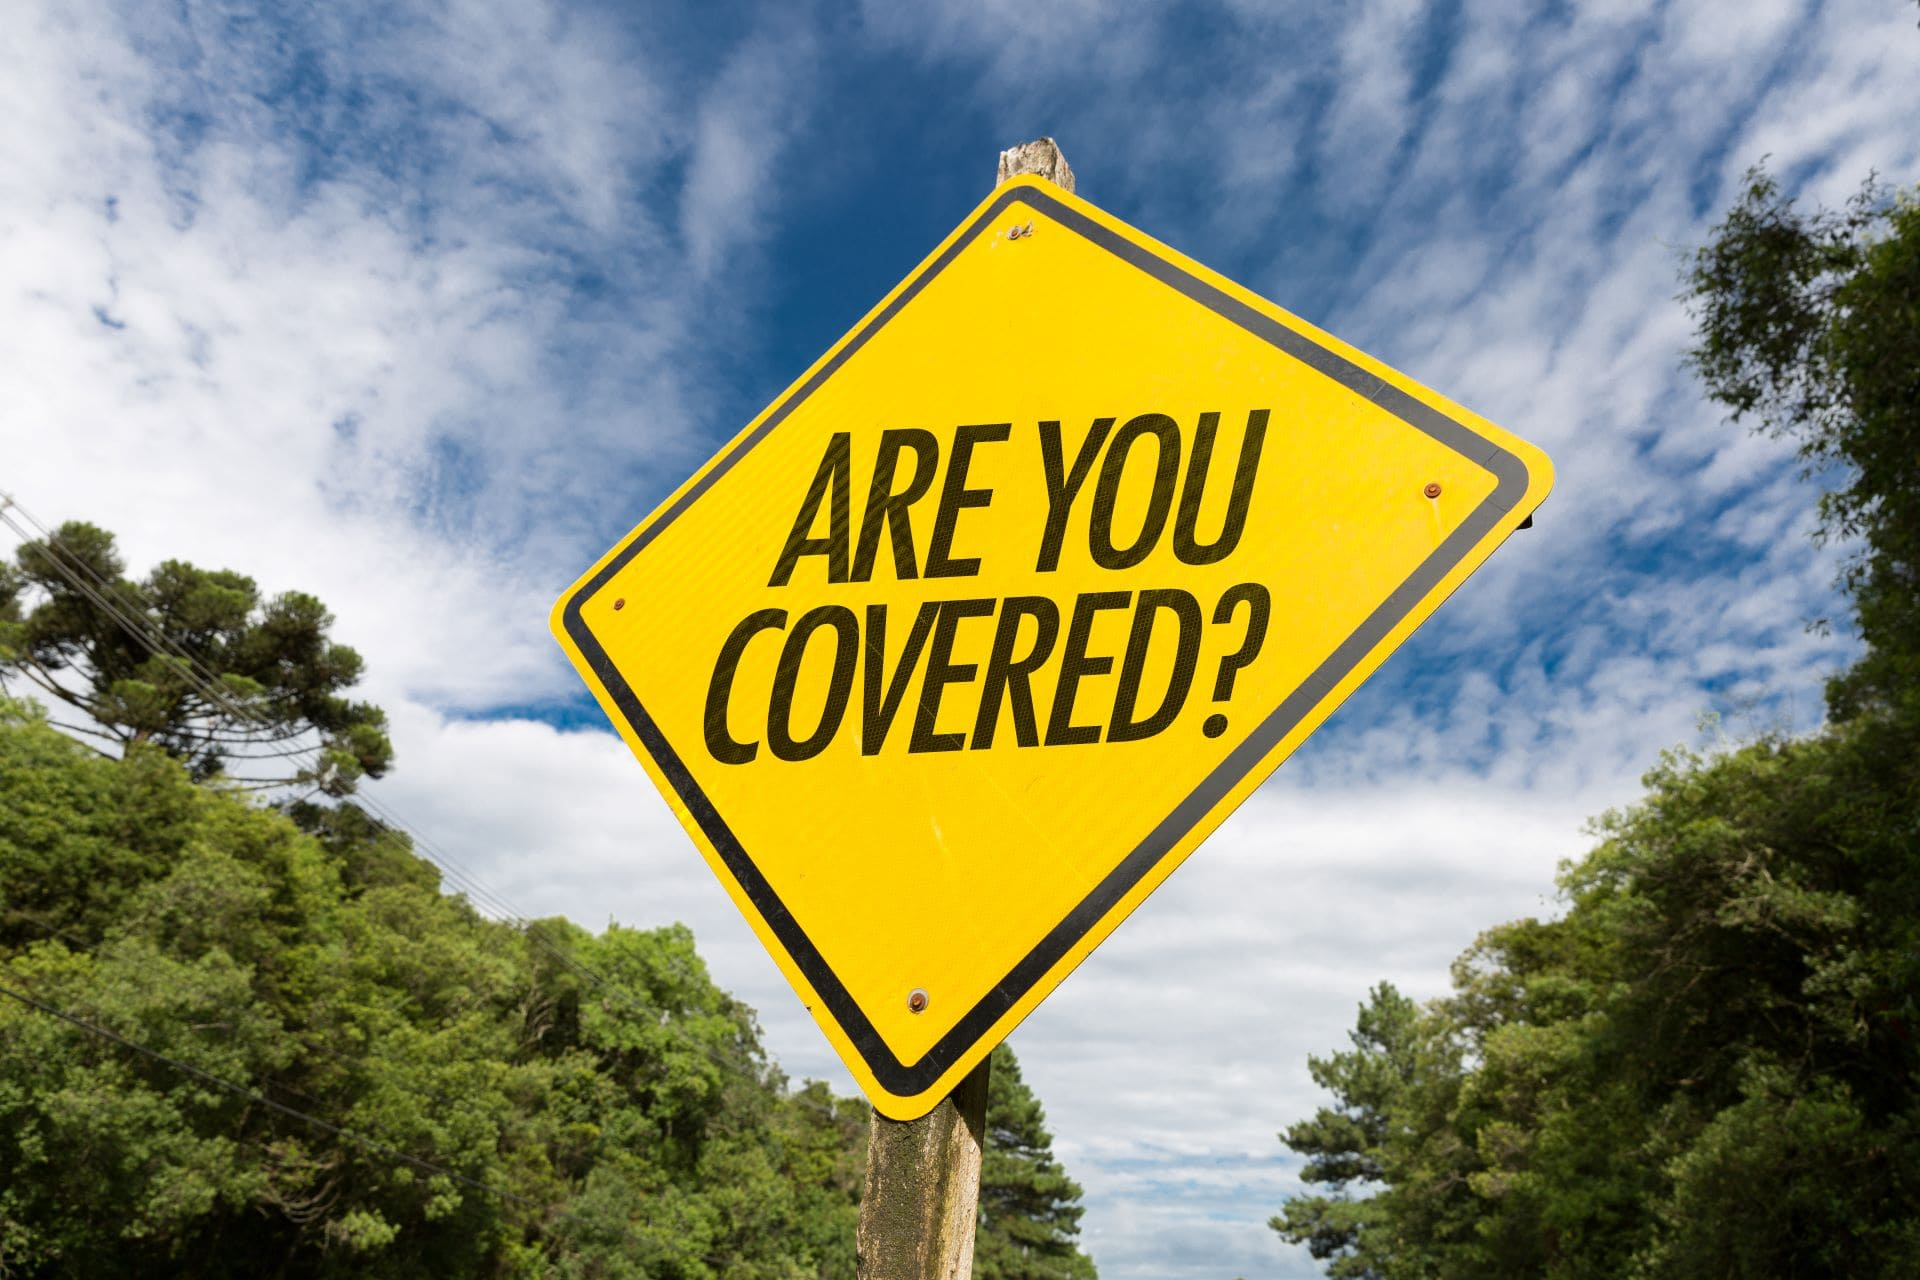 Are you covered?